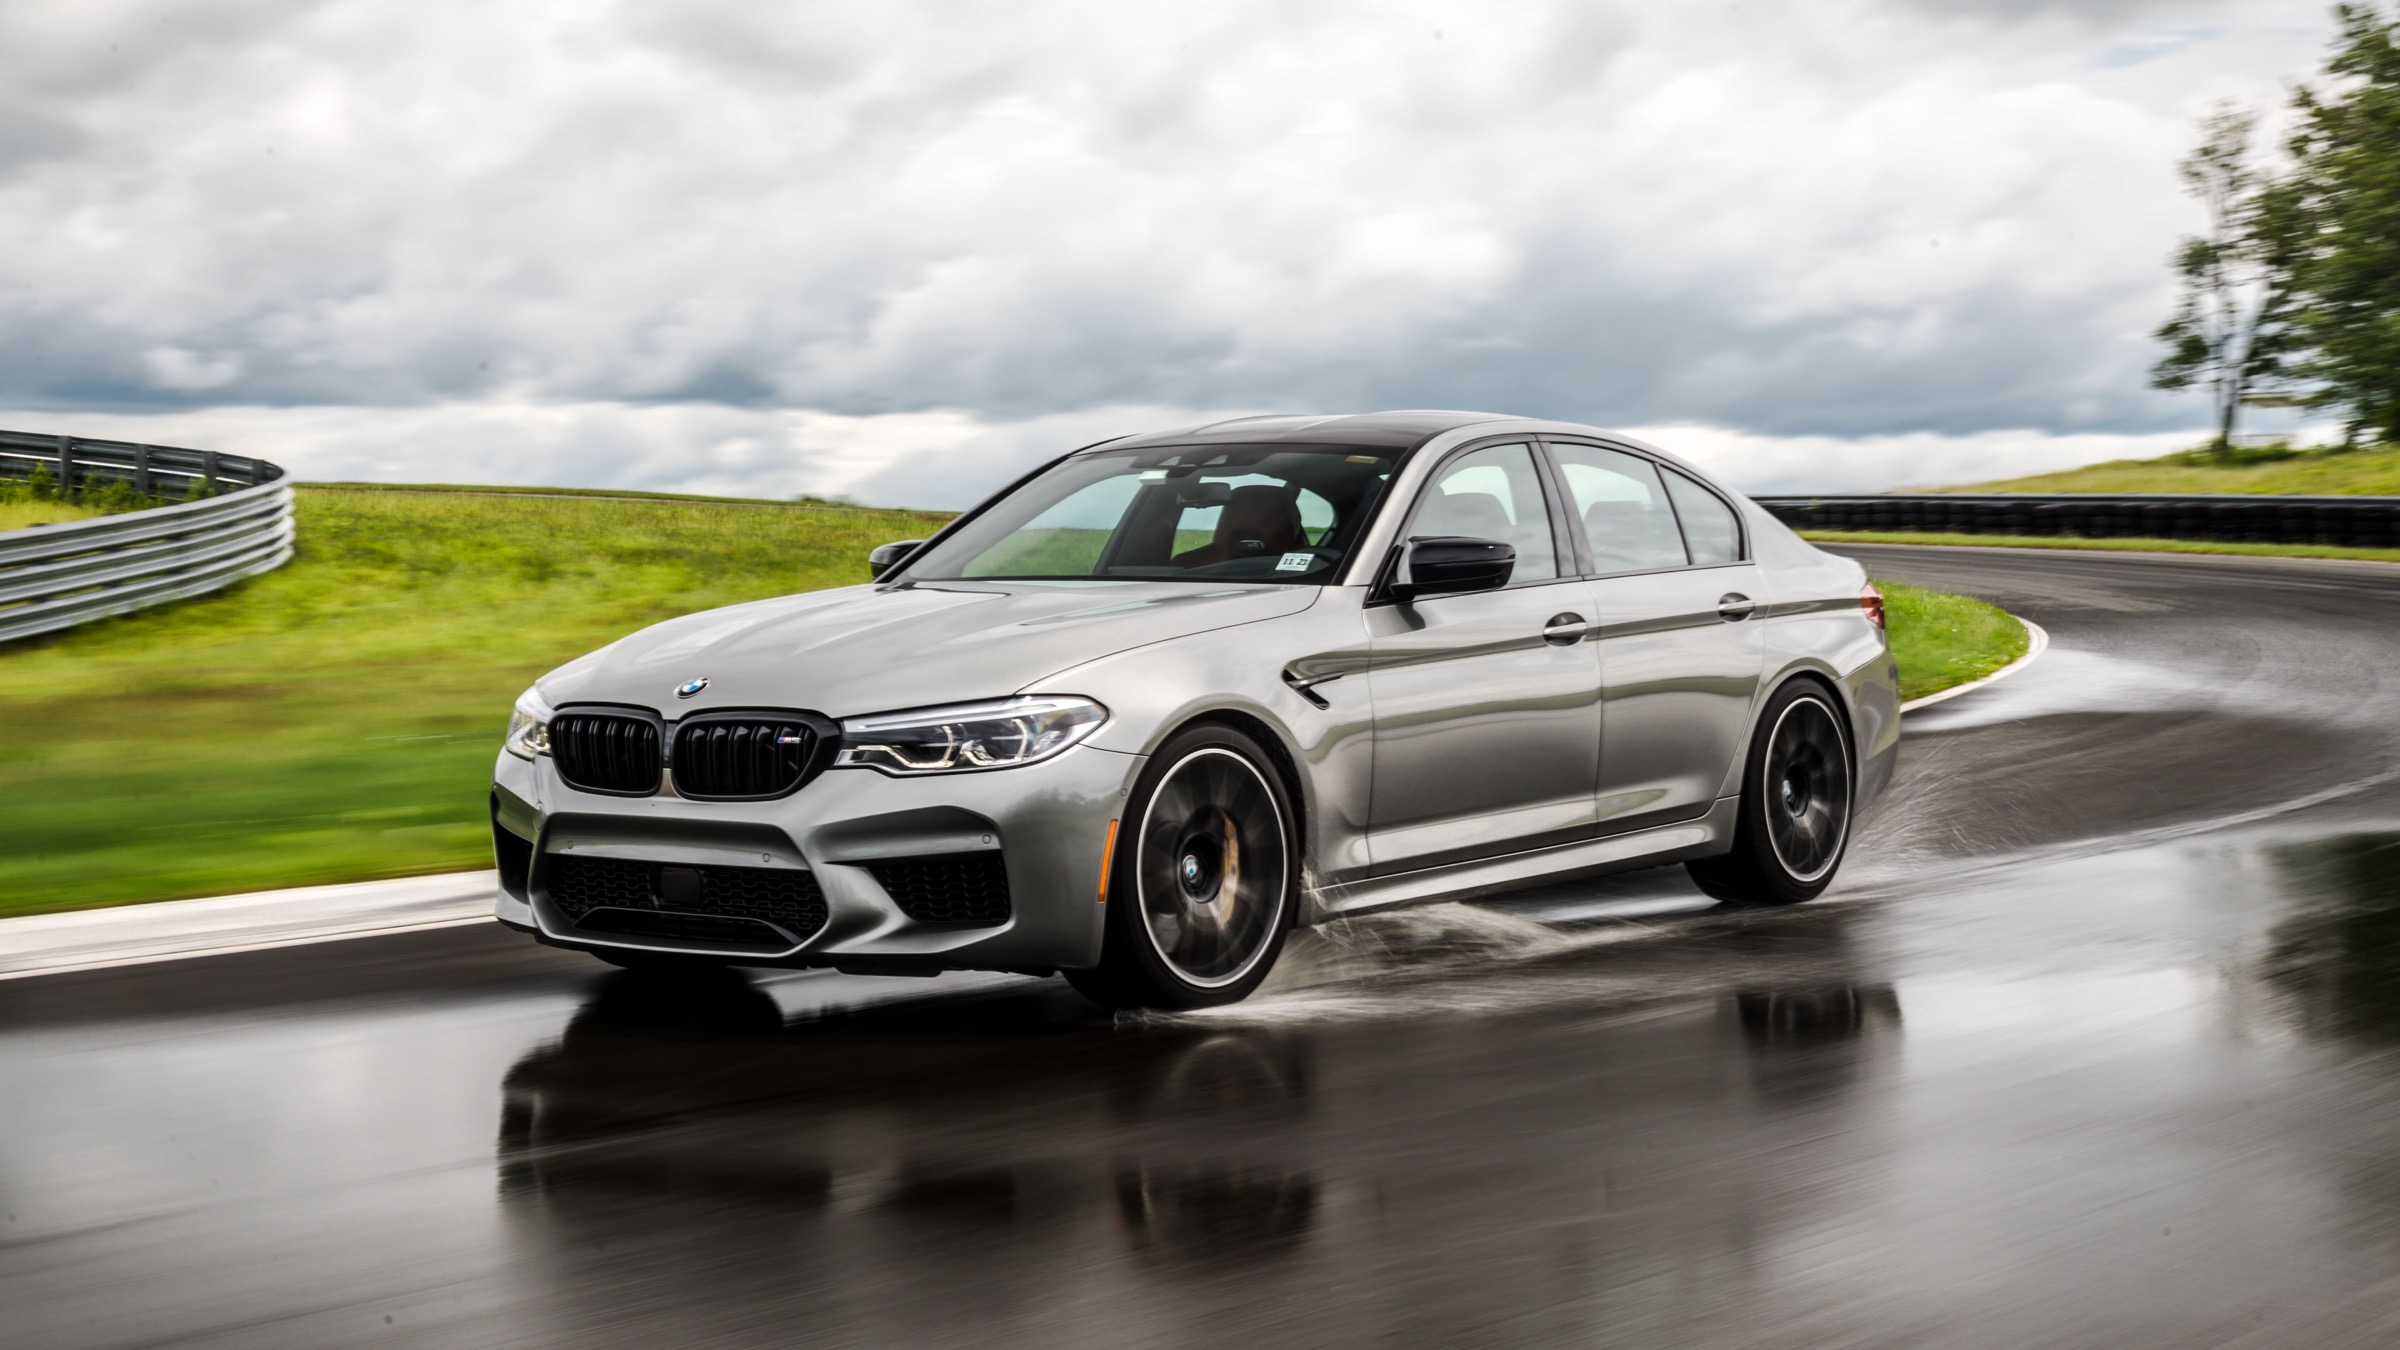 2020 BMW M5 Xdrive Awd Spy Shoot